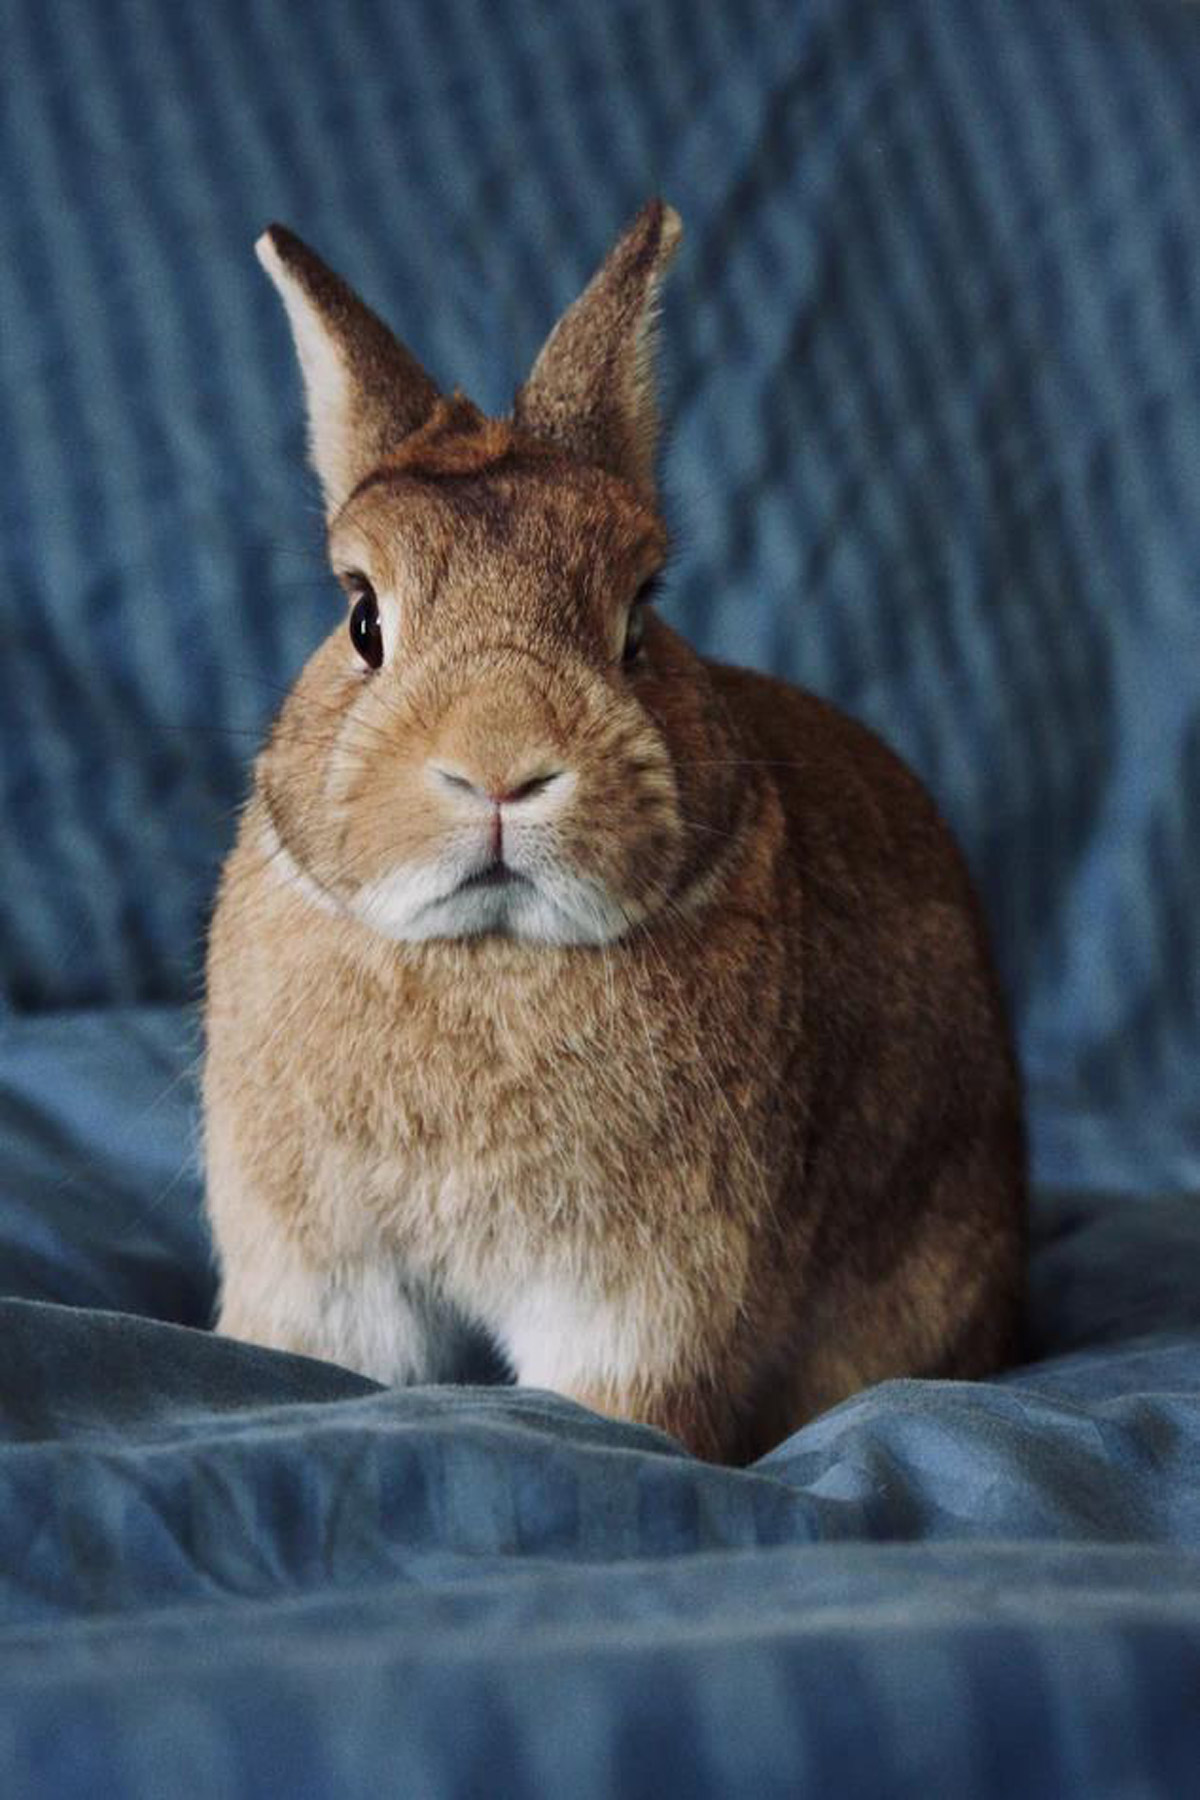 Are You Ready for a Pet Rabbit?